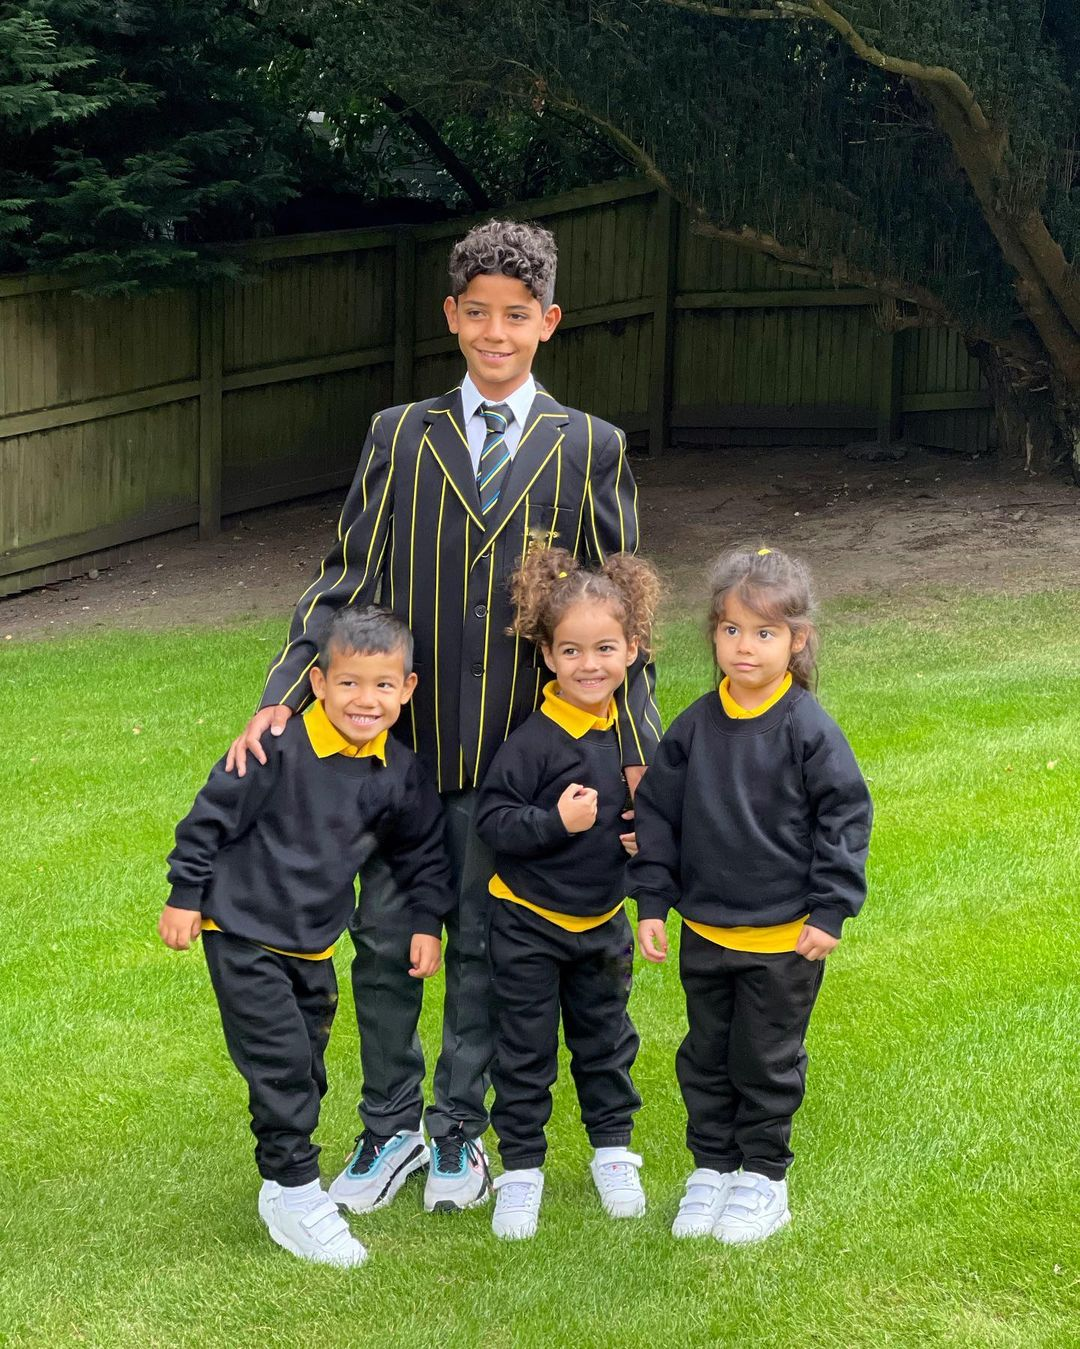 Ronaldo's children on the first day of school